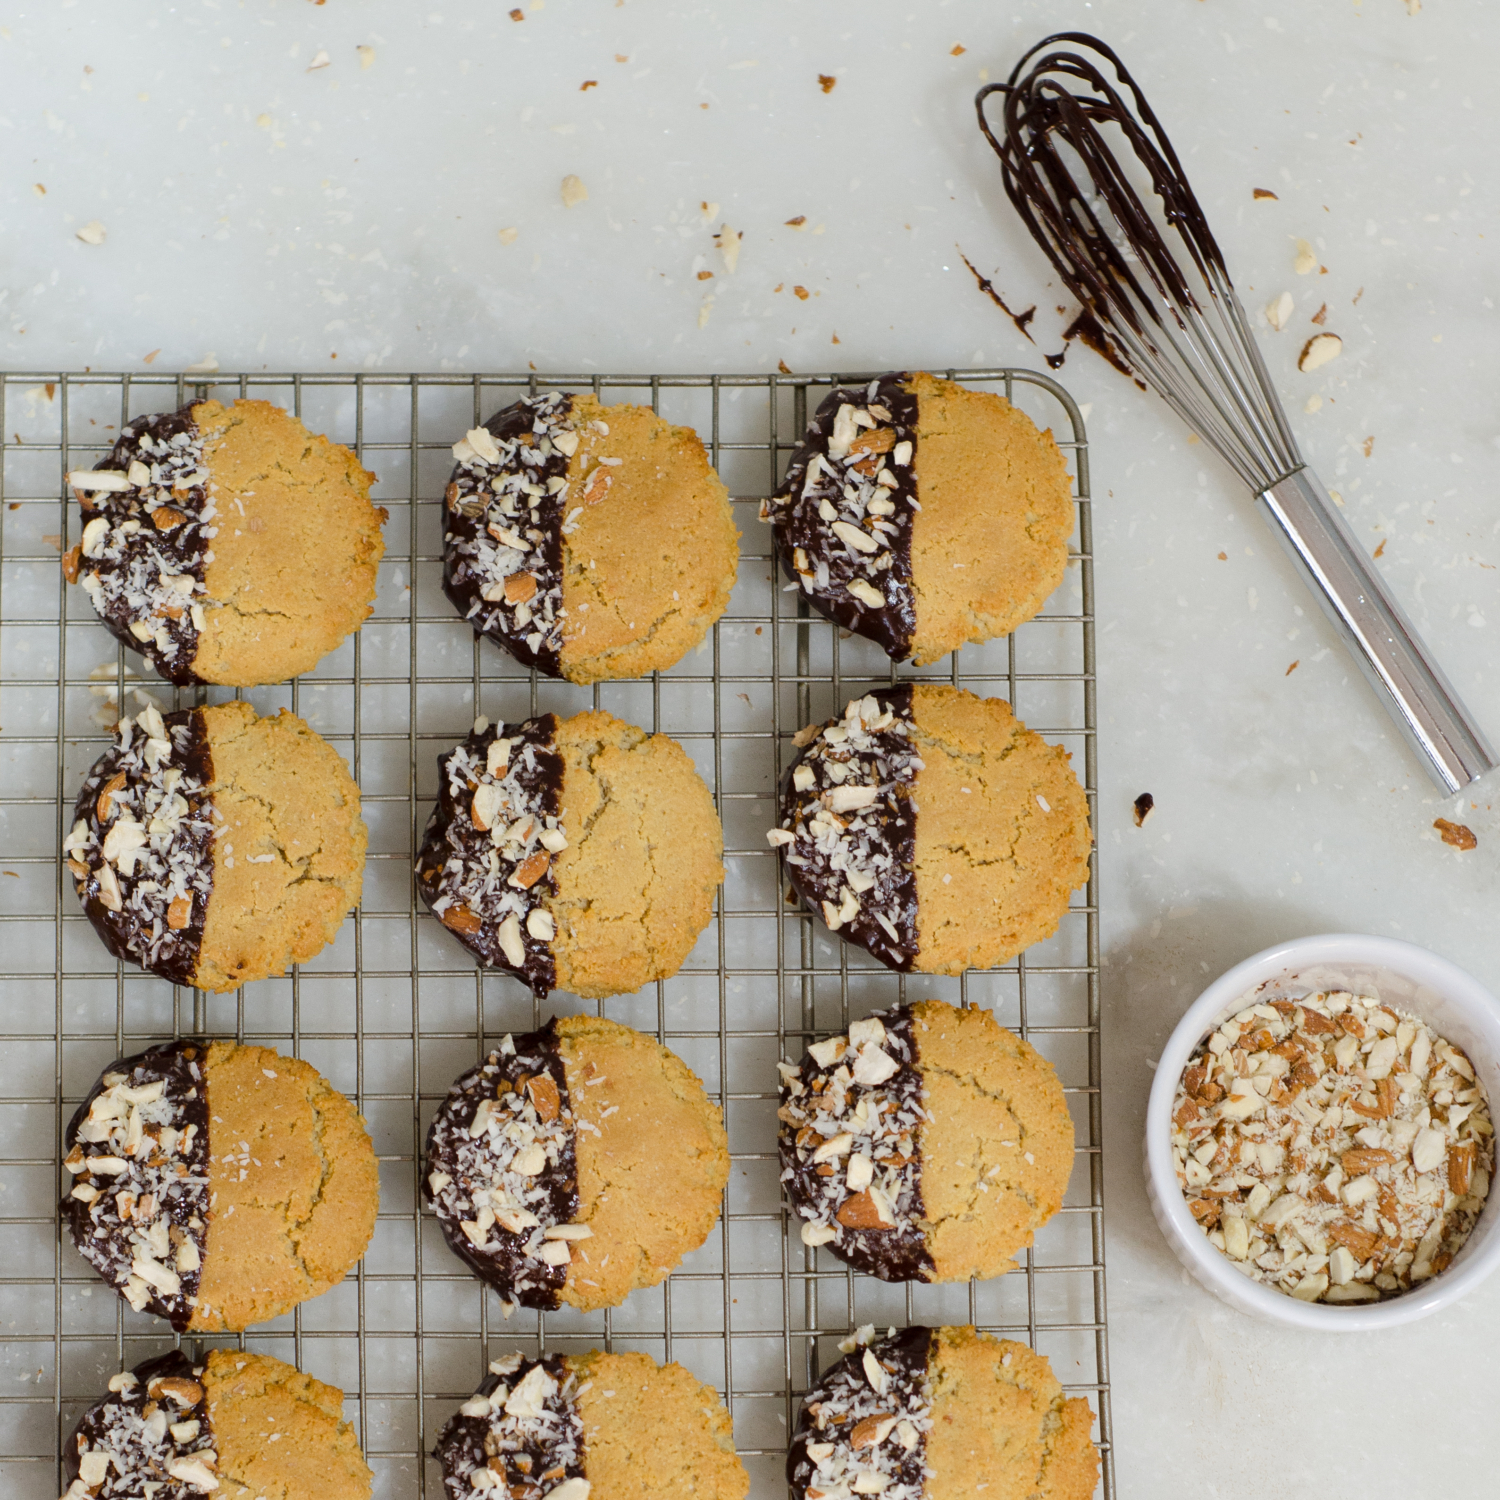 A paleo cookie recipe so delicious you'll forget you're eating healthy! Almond, coconut, and chocolate cookies for those looking for a healthy cookie recipe or just a little something sweet and tasty!